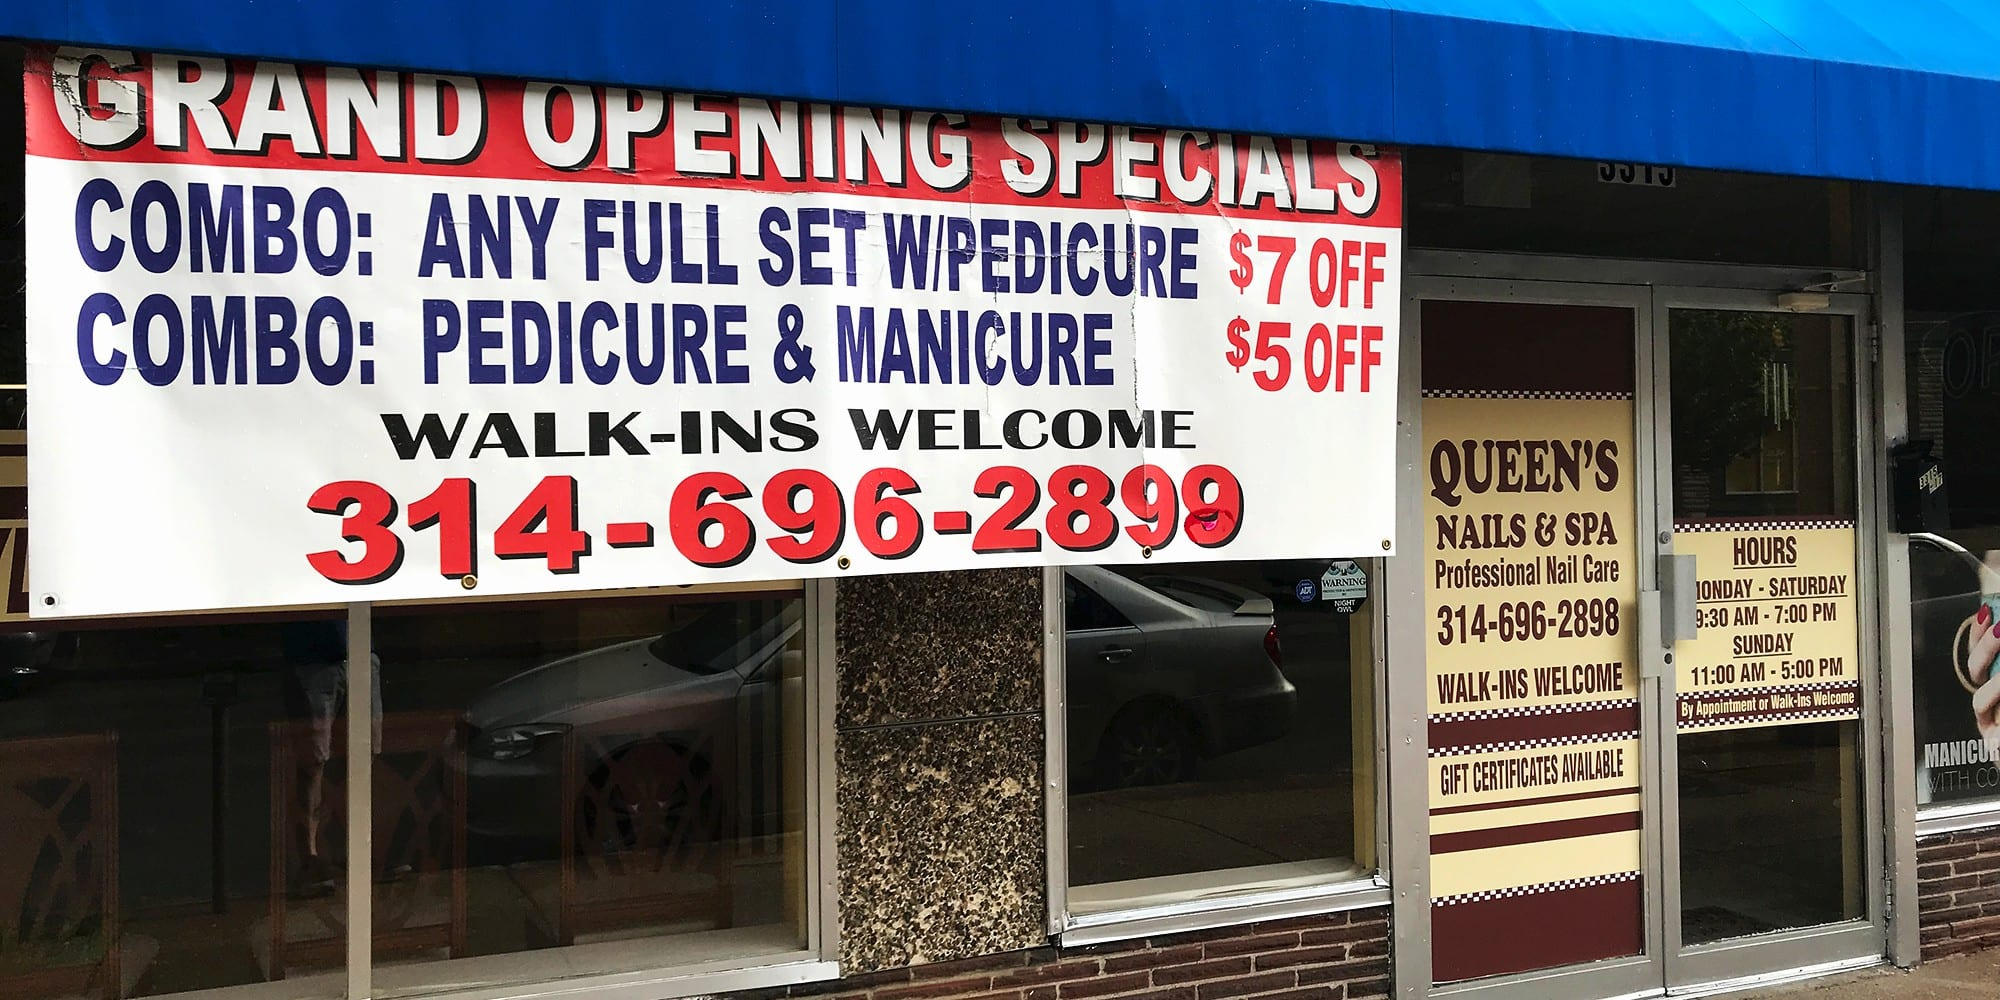 Queen's Nail Salon on Meramec. Photo by Nick Findley.